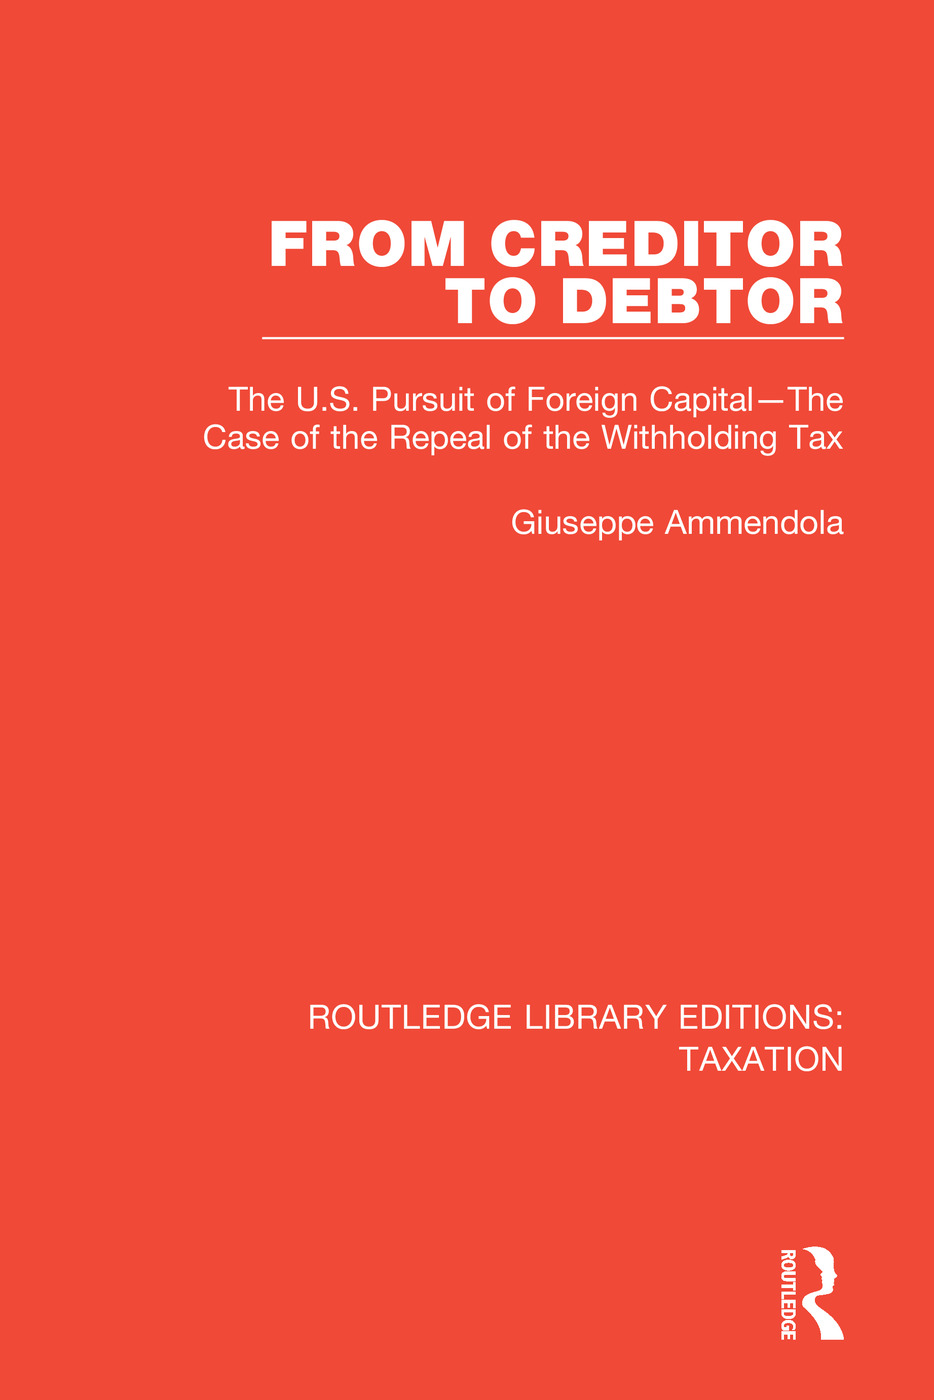 From Creditor to Debtor